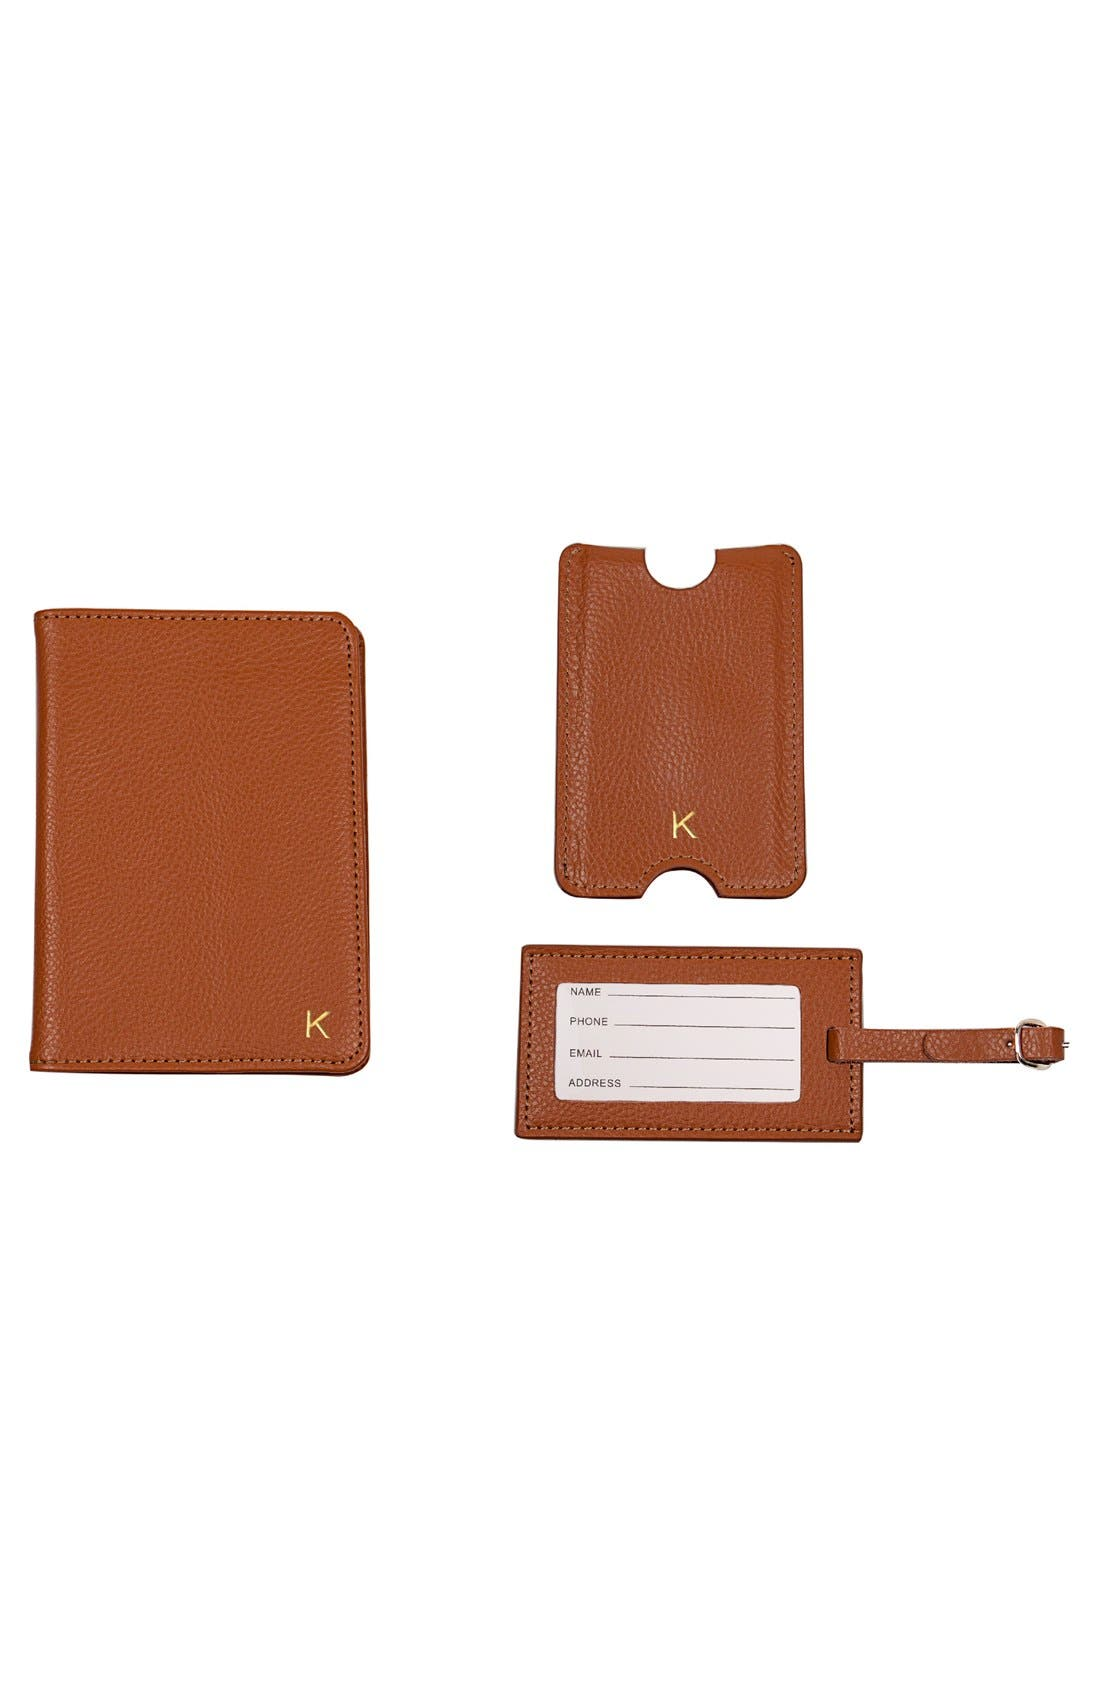 Monogram Passport Case & Luggage Tag,                             Alternate thumbnail 3, color,